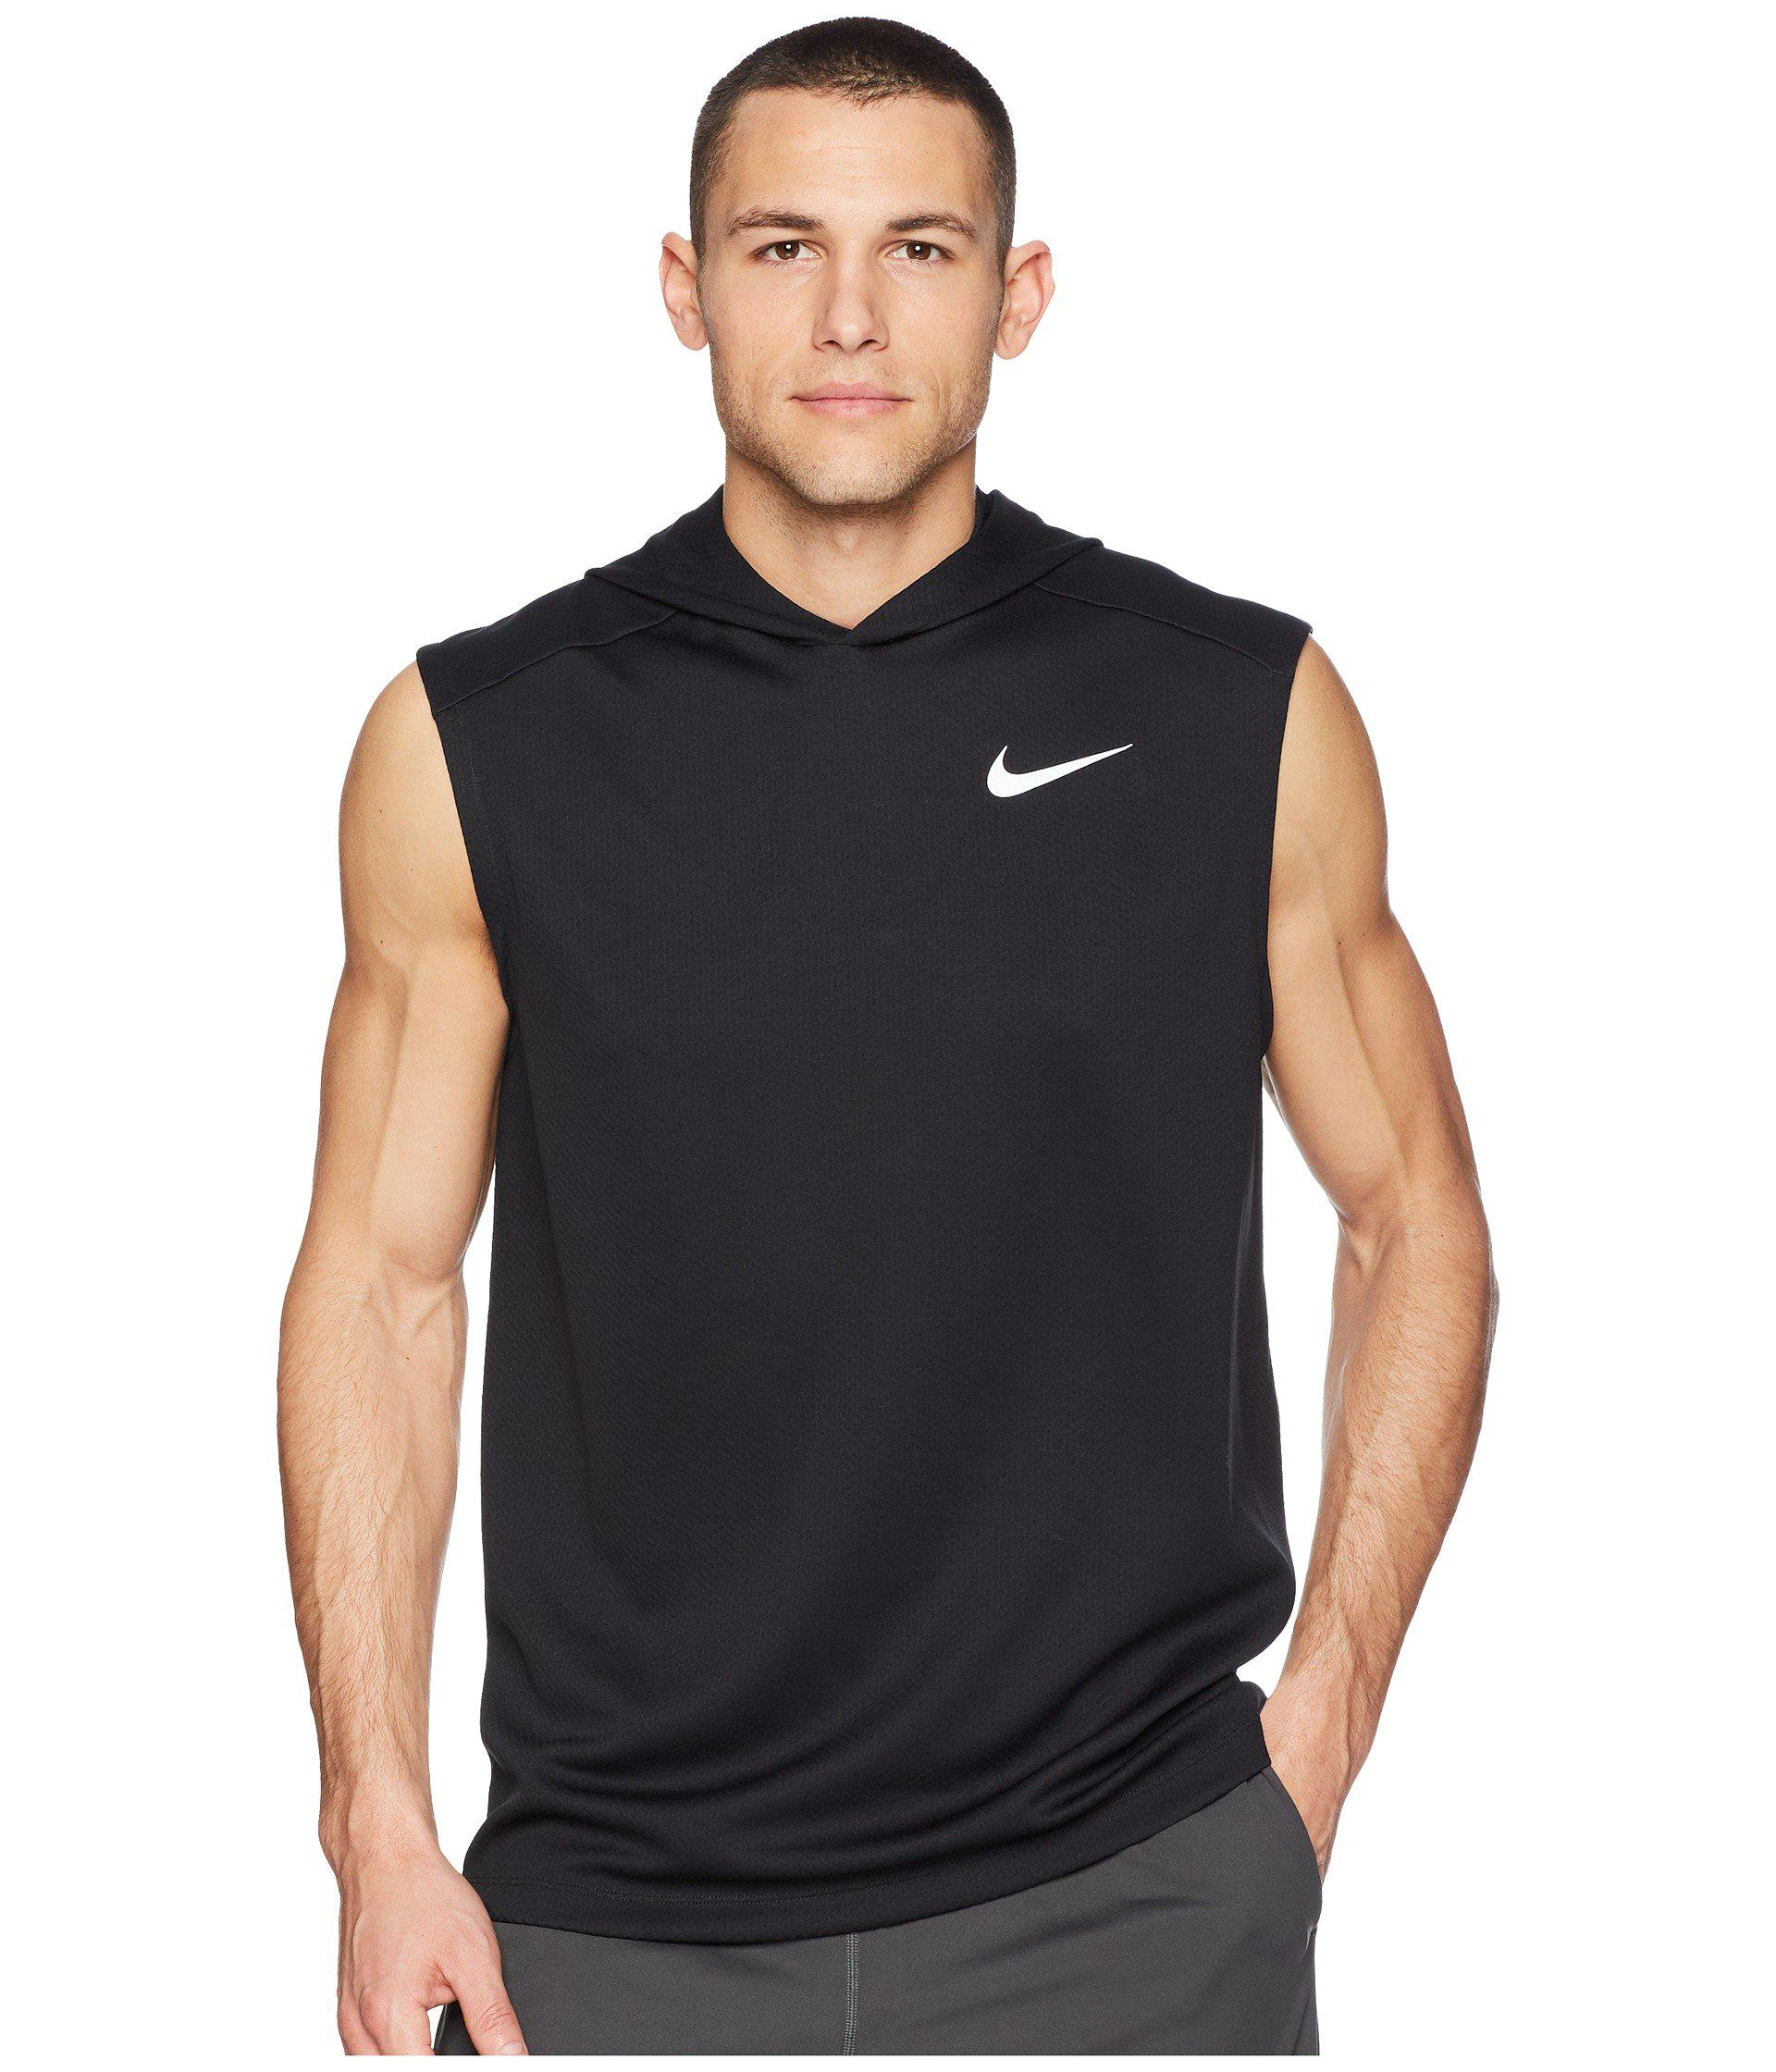 f4d9539c3d7294 Lyst - Nike Dry Top Sleeveless Running Hoodie in Black for Men